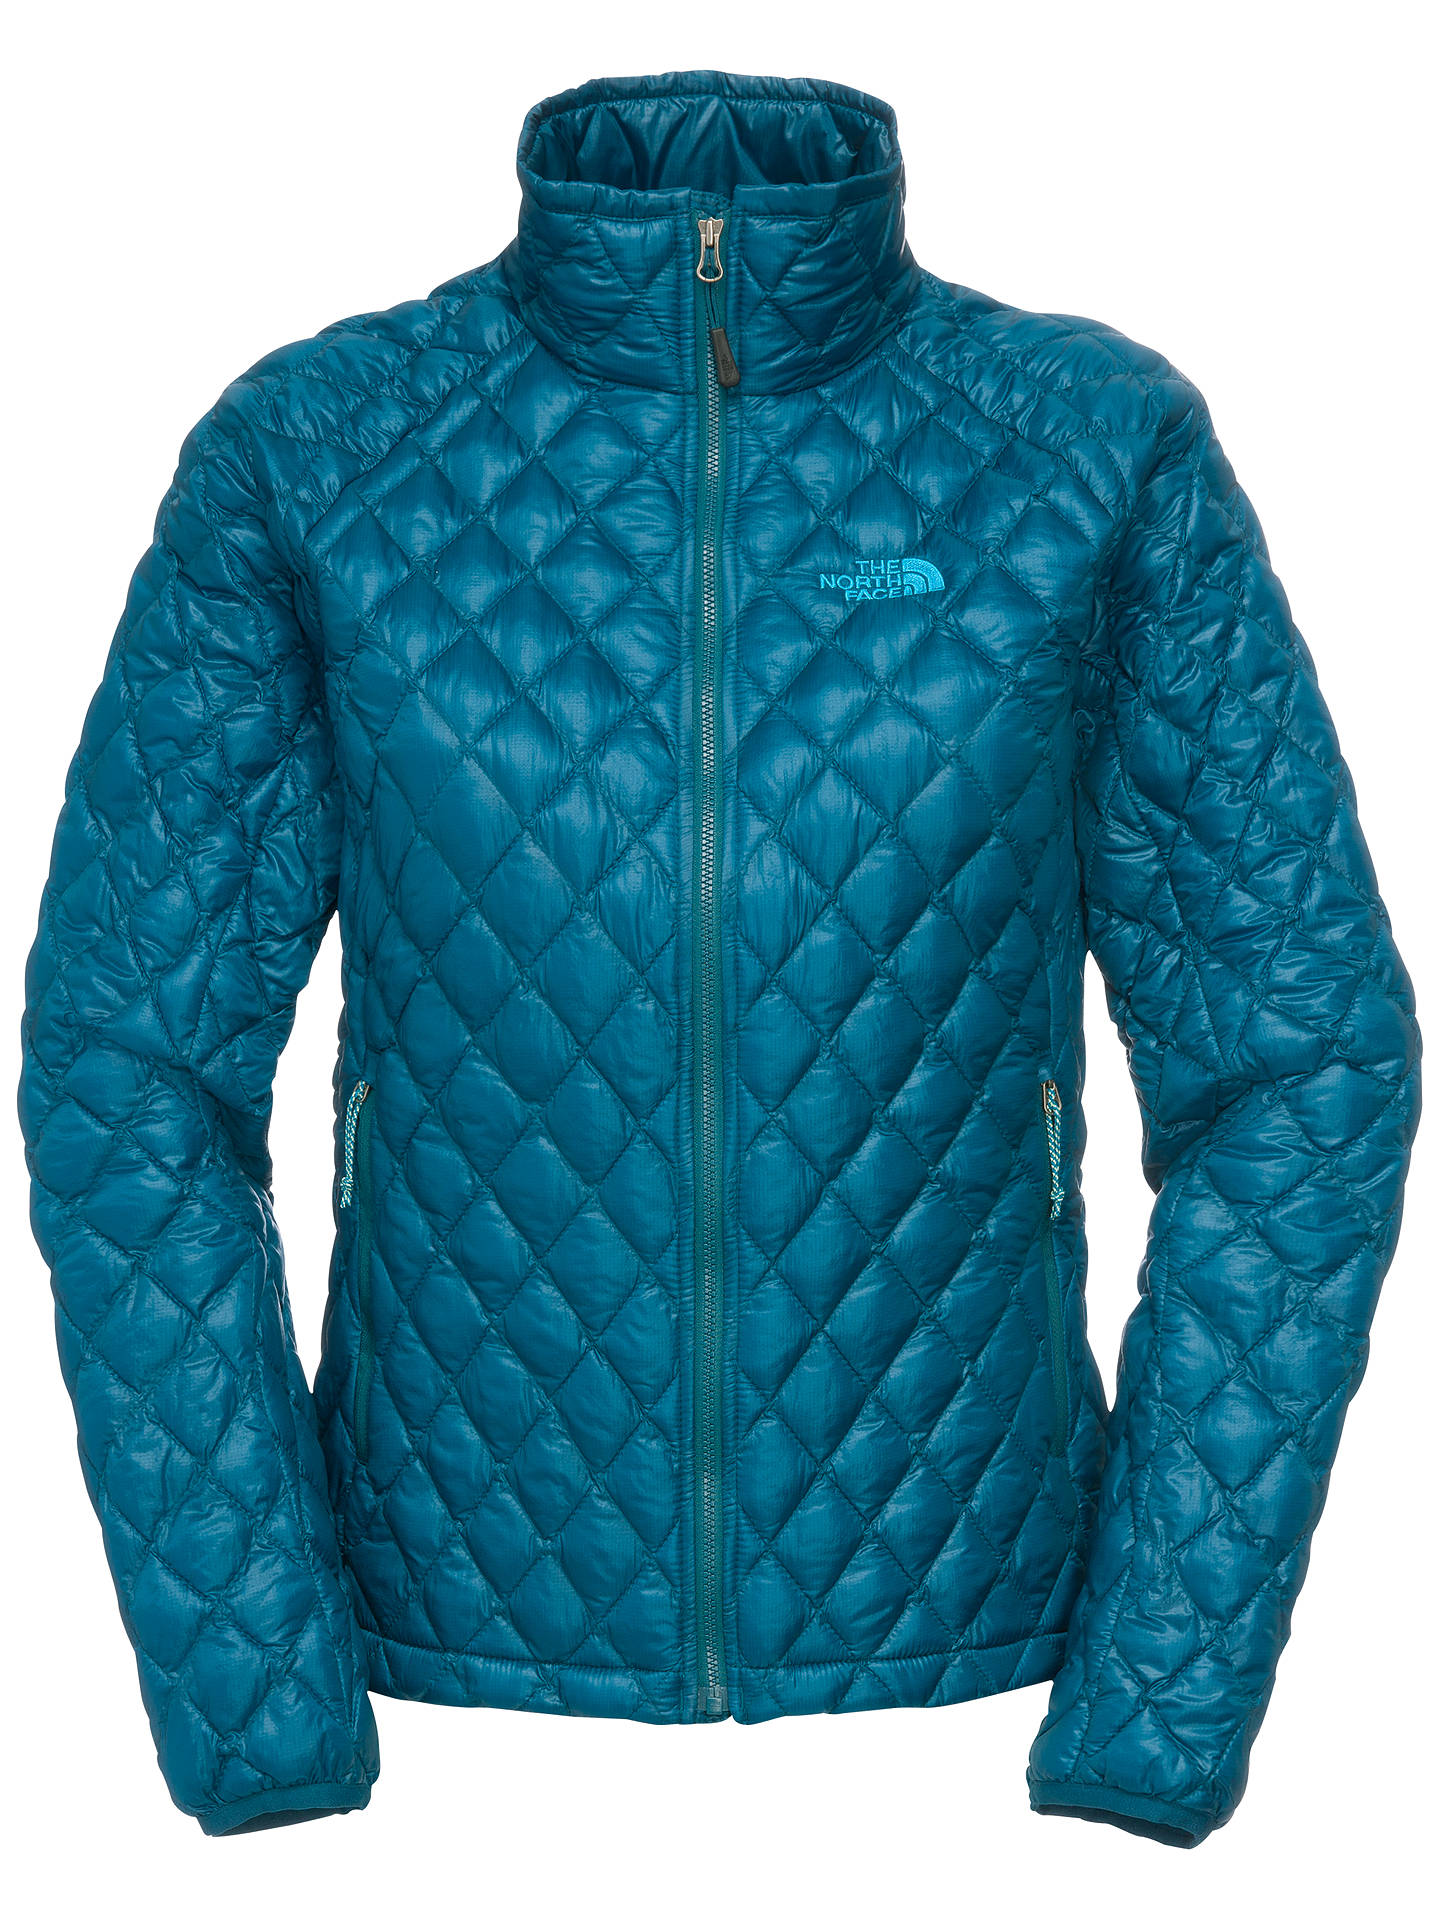 b14bf6e9a The North Face Women's Thermoball Quilted Jacket at John Lewis ...